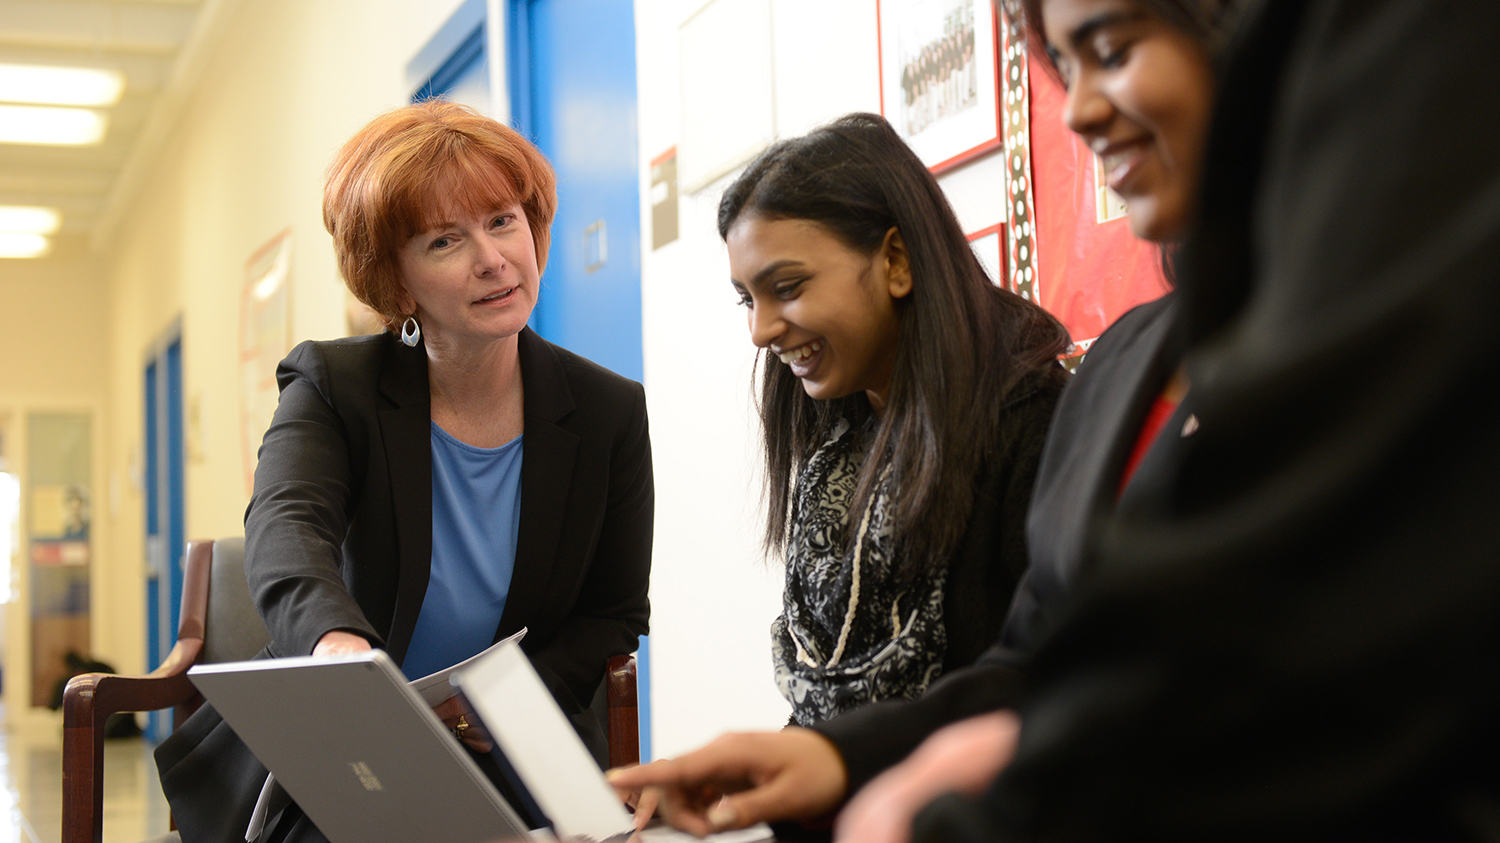 A faculty member talks with two students.